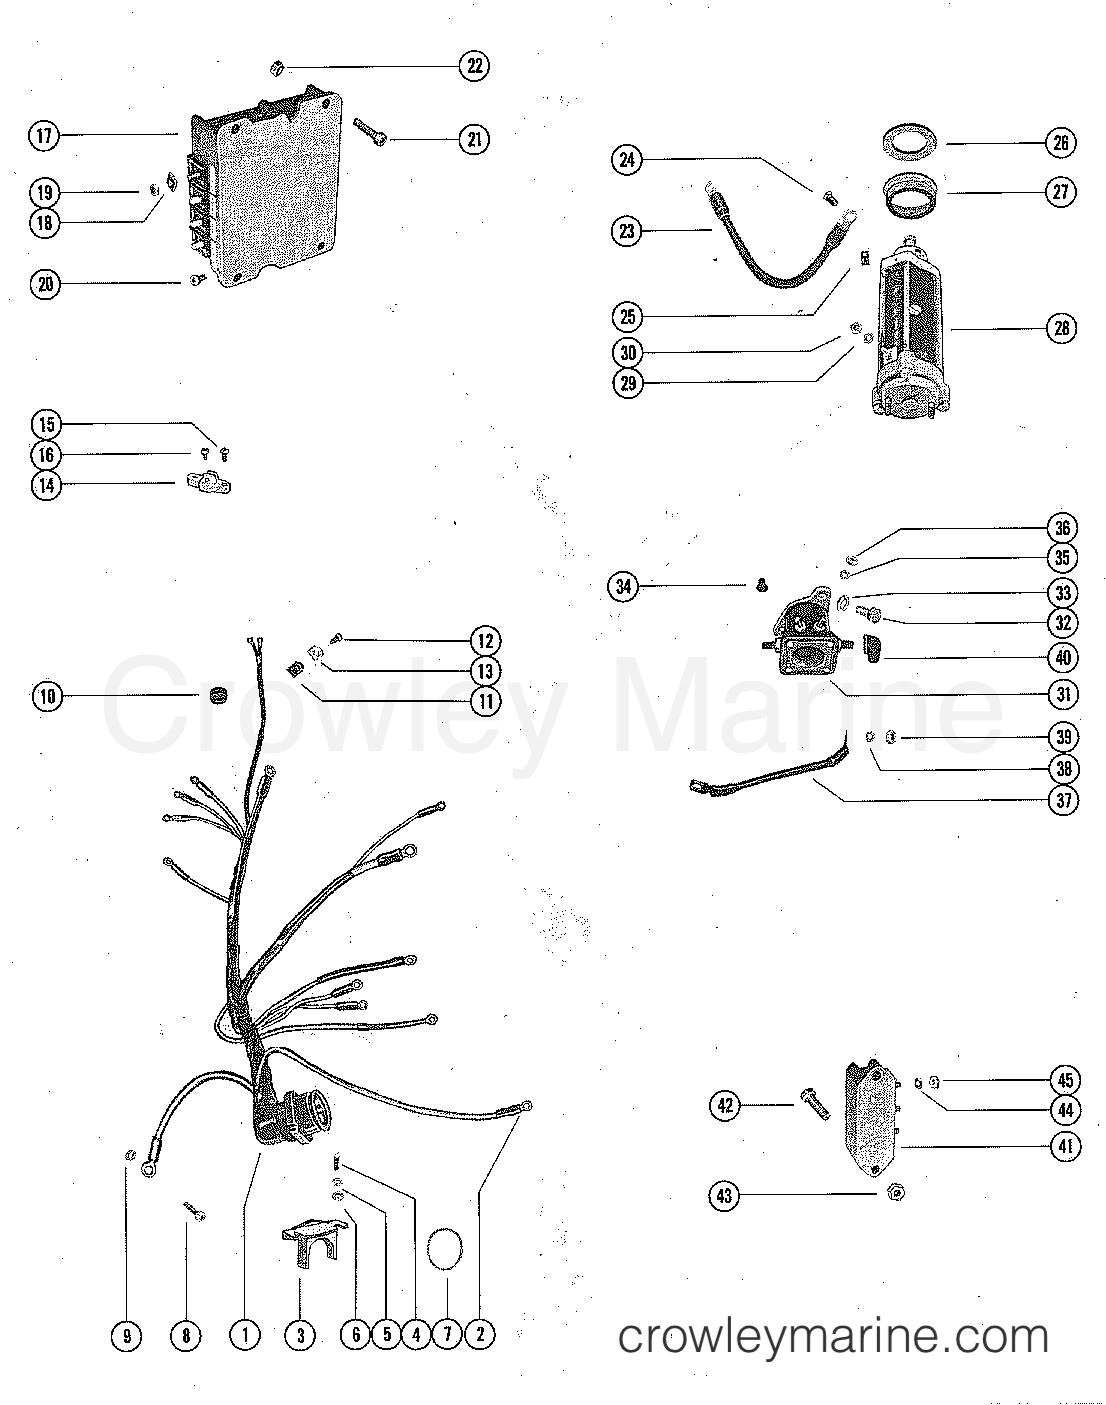 Starter Motor Solenoid Rectifier And Wiring Harnes 4 Wire Diagram Serial Range Mercury Outboard 1350 2839369 Thru 3293233